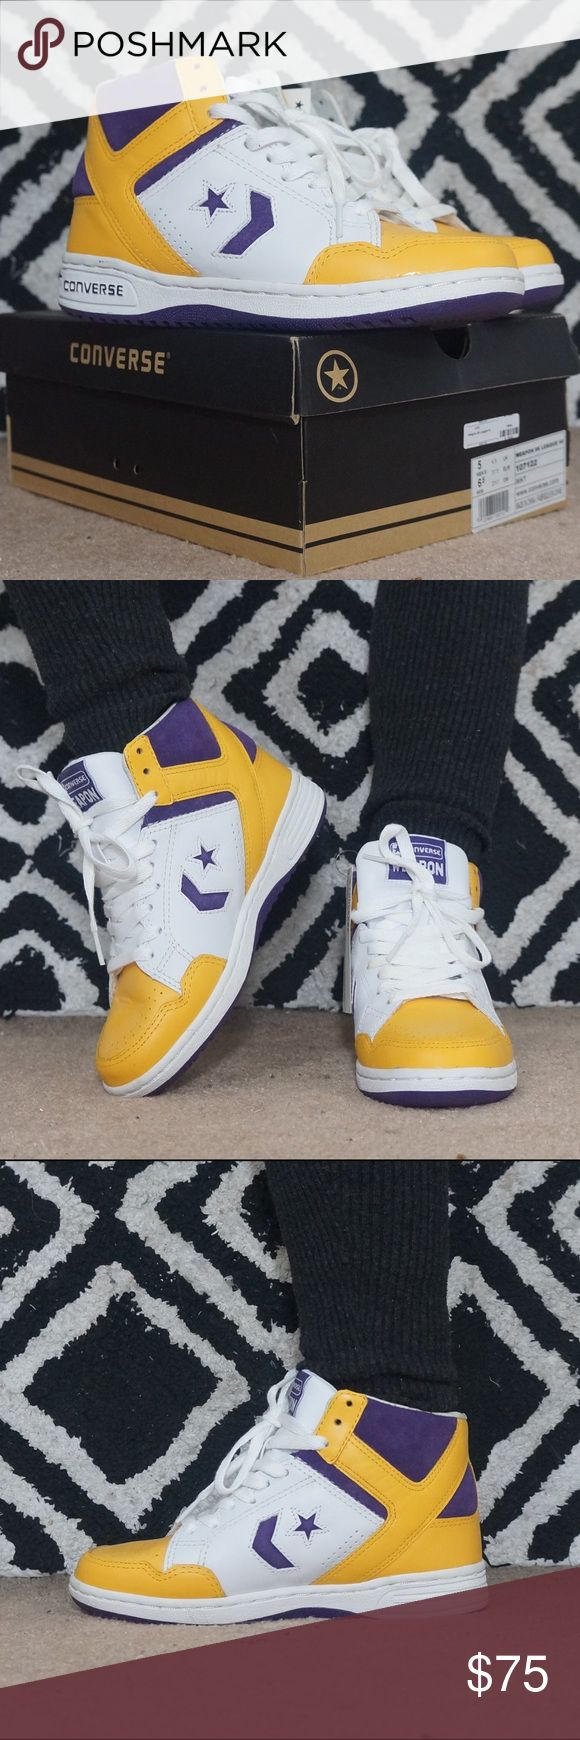 "Converse Weapon's Converse ""Weapon 86 League Hi"". White, Purple, Yellow. Laker's colors. Size 5 men, 6.5 women. Runs big like a women's 7. Box included. Converse Shoes Sneakers"